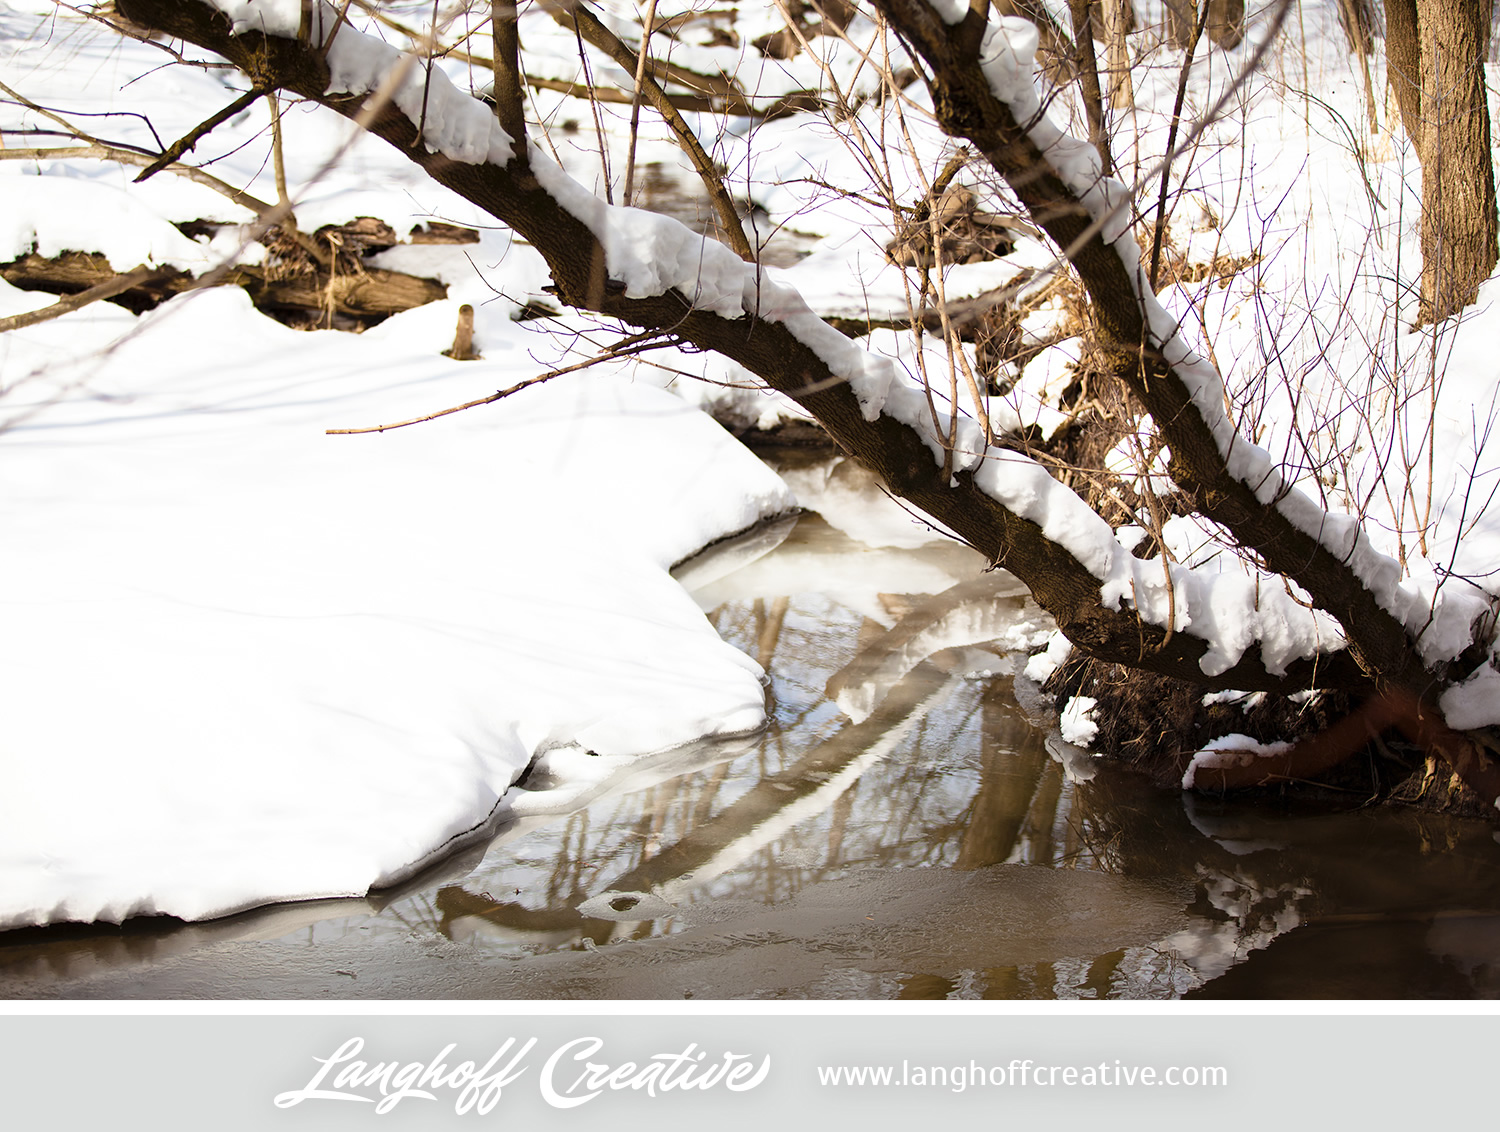 LanghoffCreative-20130308-winter16-image.jpg